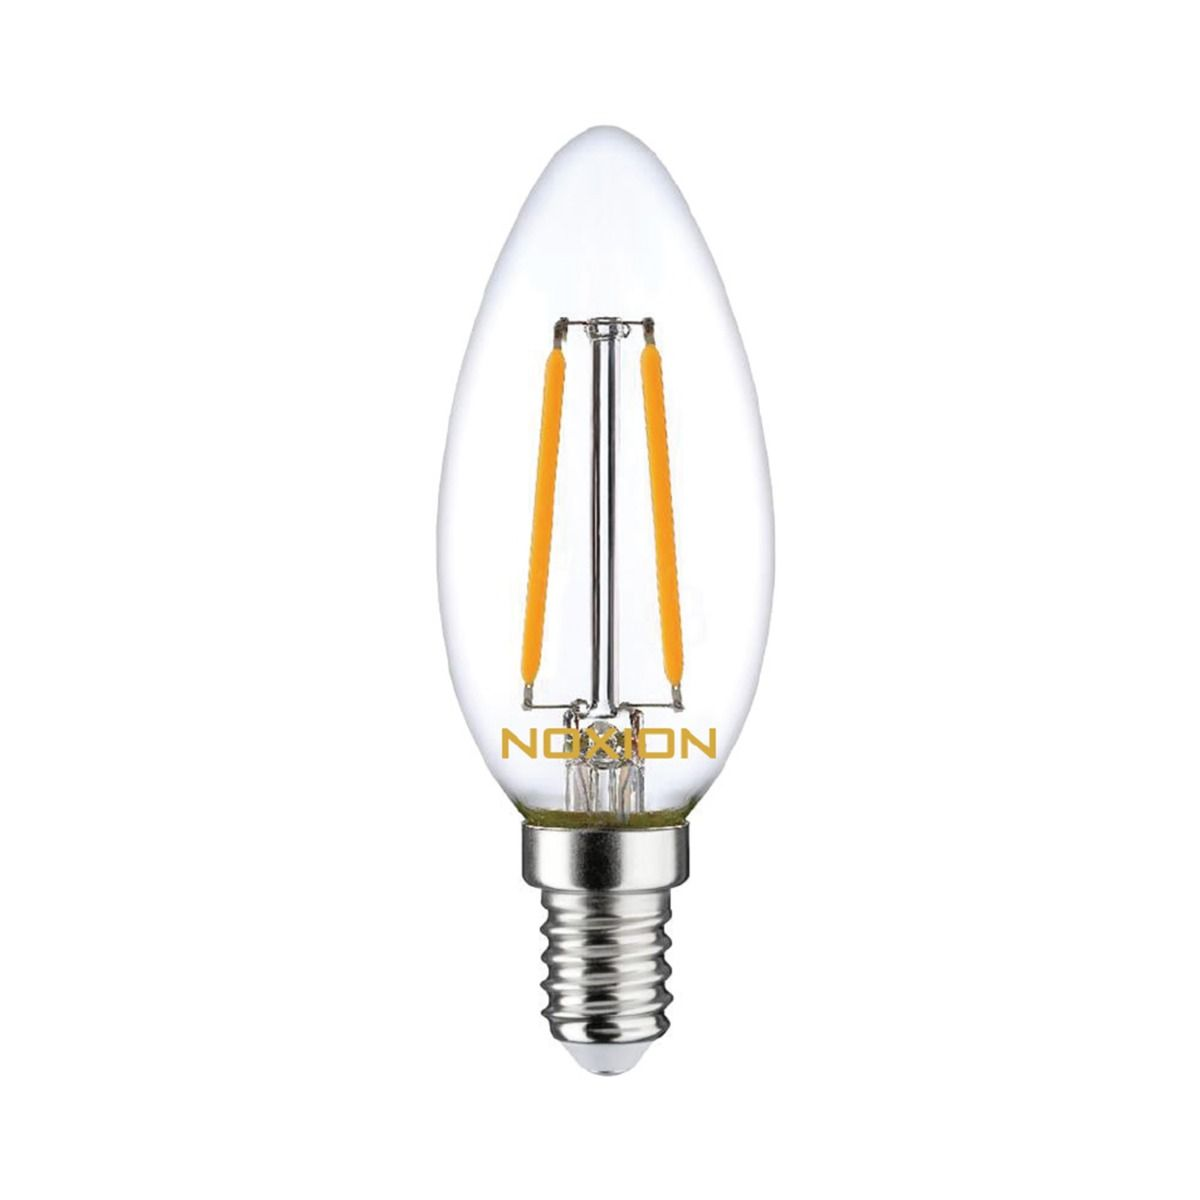 Noxion Lucent Filament LED Candle 2.5W 827 B35 E14 Clear   Replacer for 25W